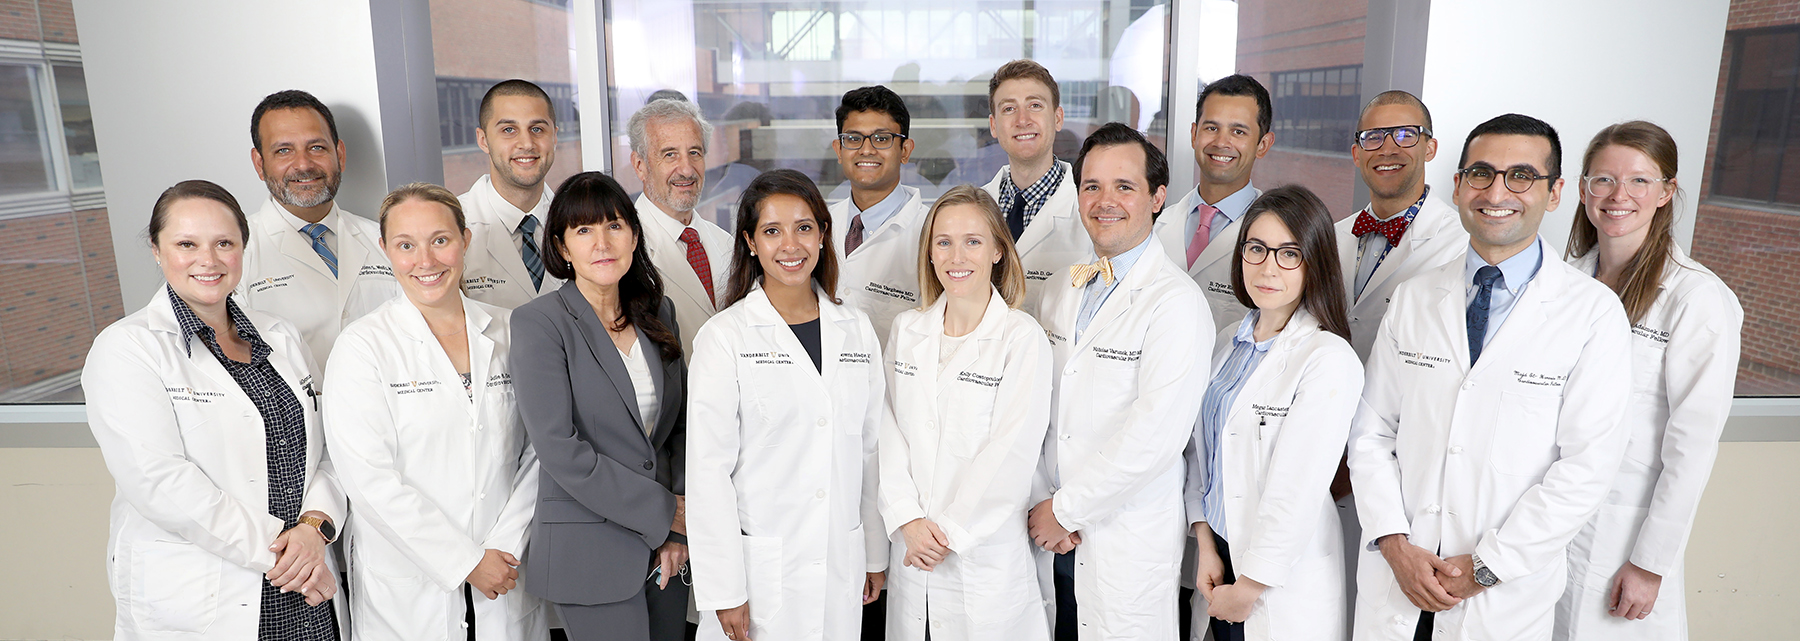 Dr. Freedman with new CA fellows